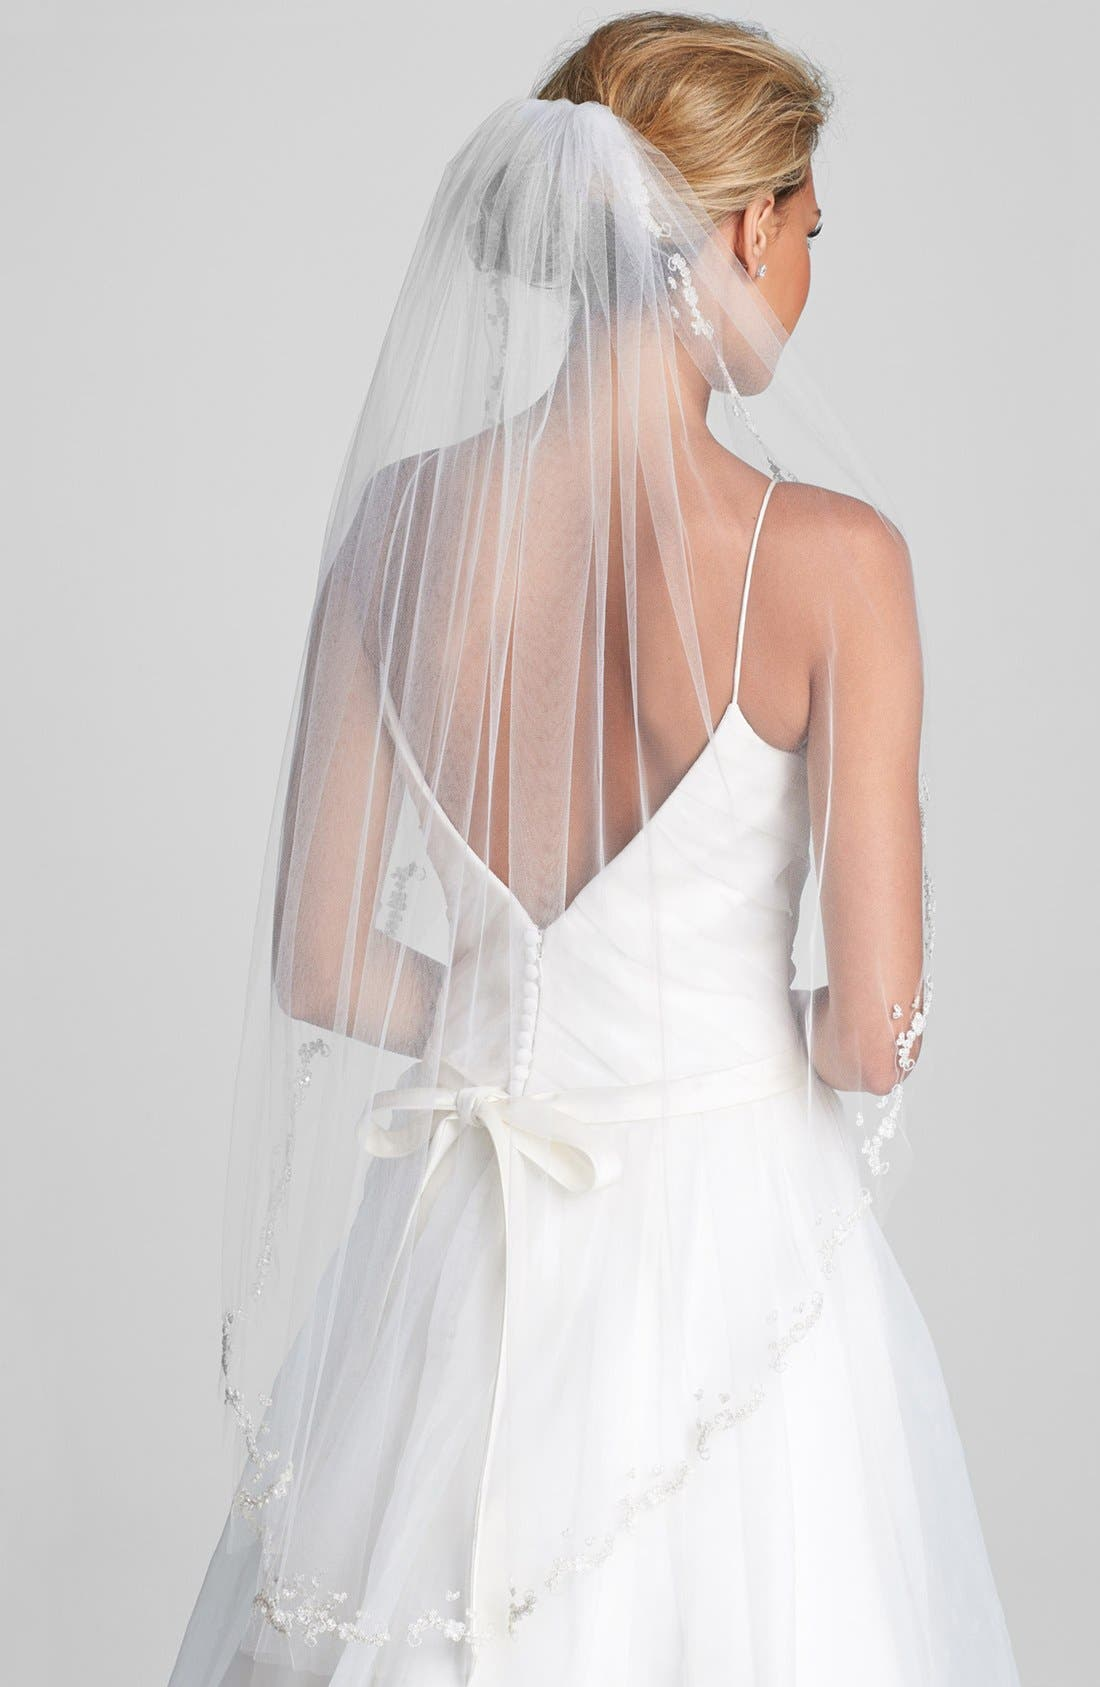 Wedding Belles New York 'Mary Kate' Embroidered Veil